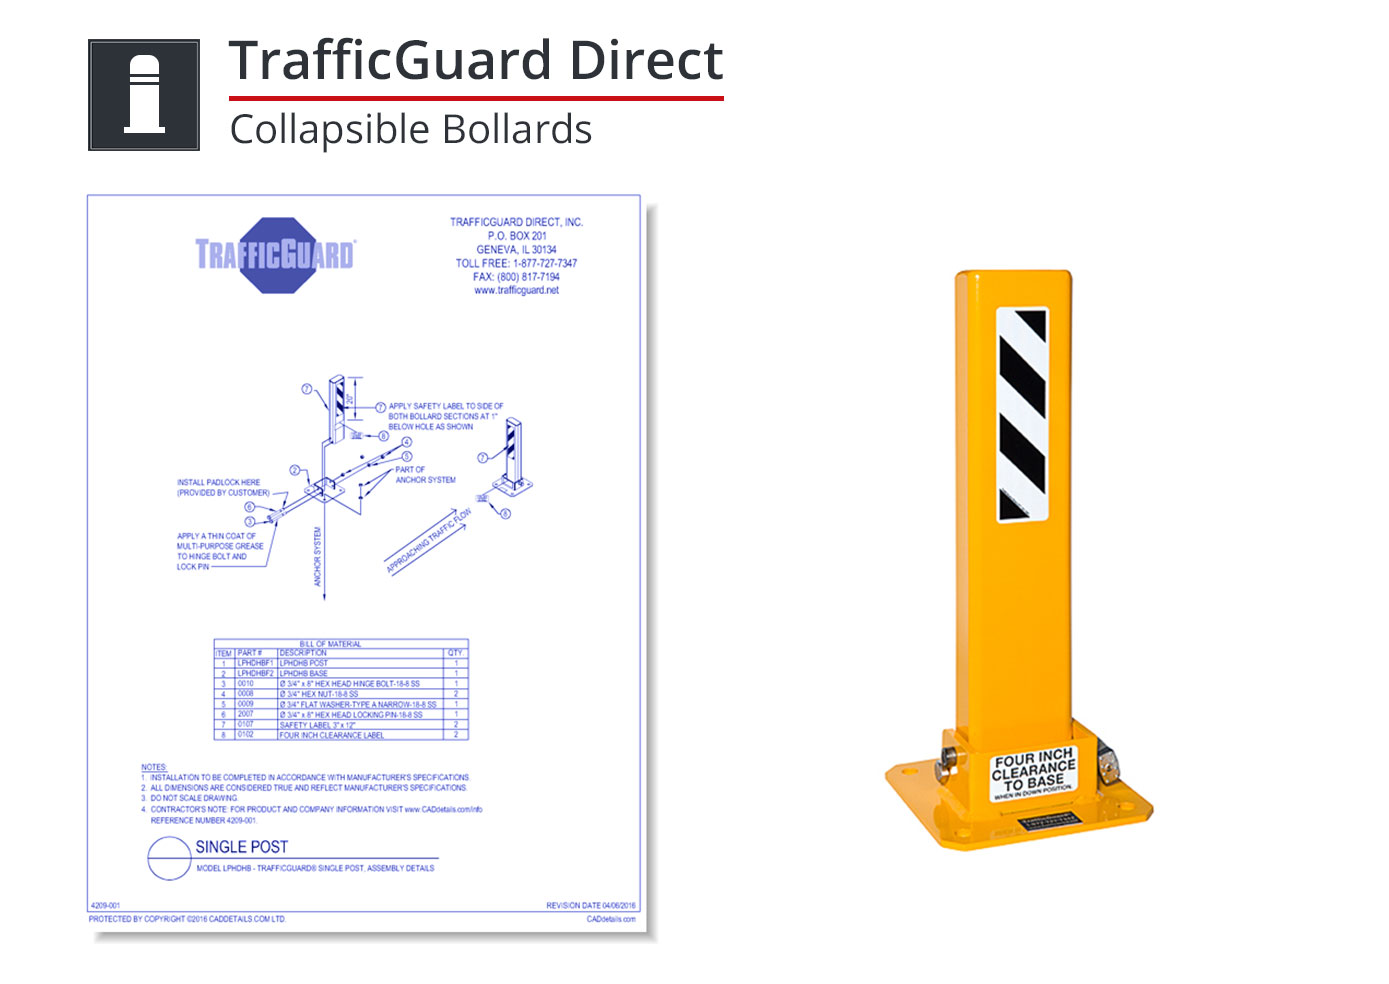 4209-001 Collapsible Bollards